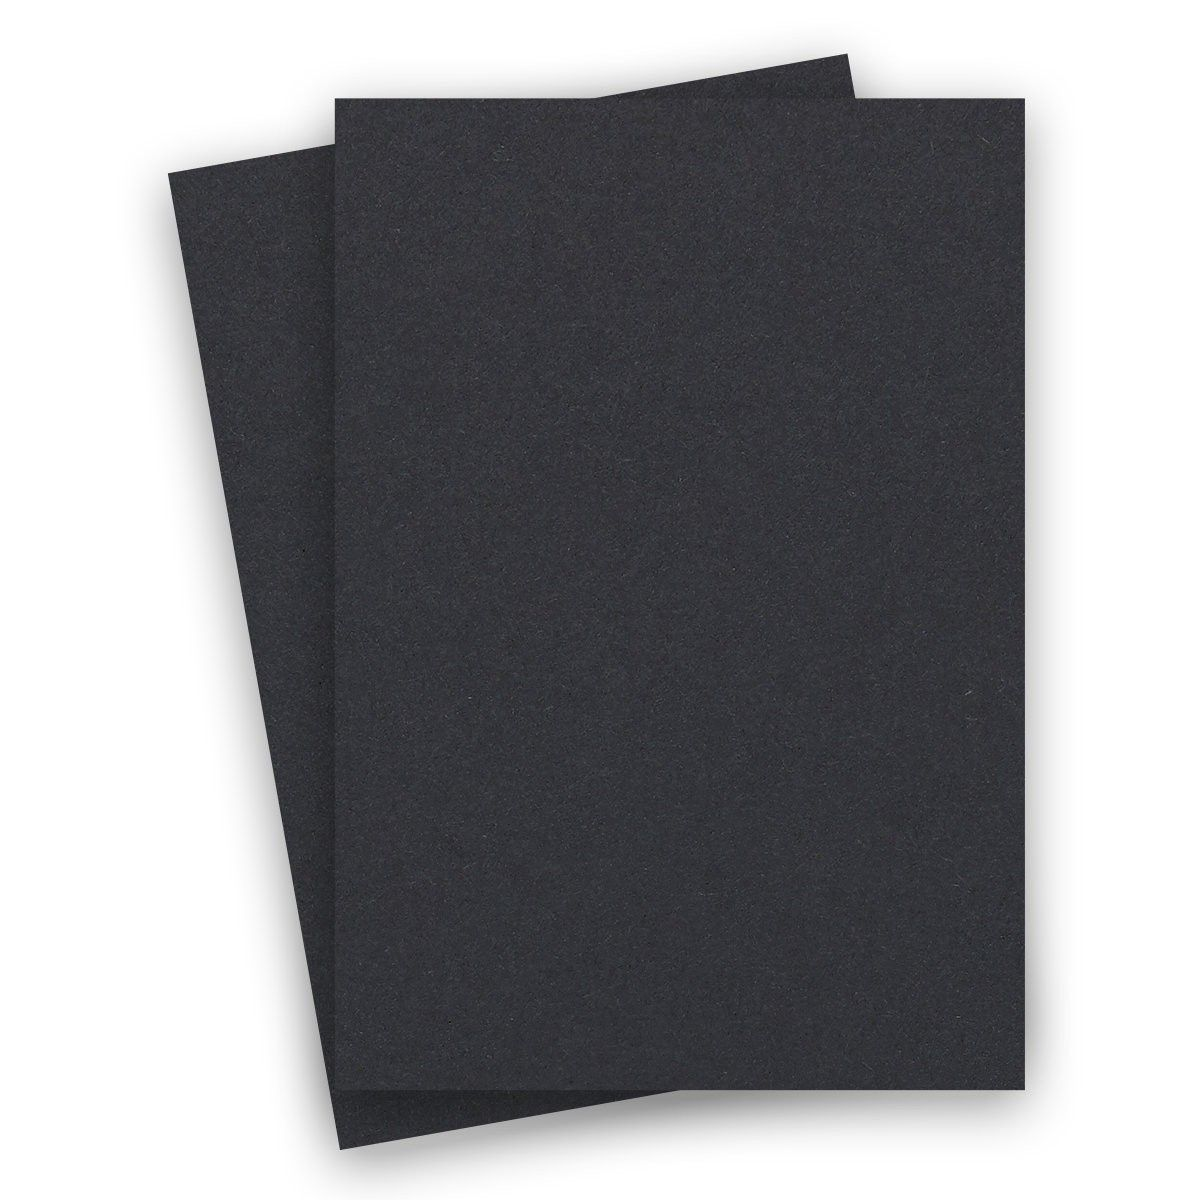 Extract Flint 8 1 2 X 14 Legal Size Cardstock Paper 380 Gsm 140lb Cover 100 Pk In 2021 Legal Size Paper Cardstock Paper Card Stock